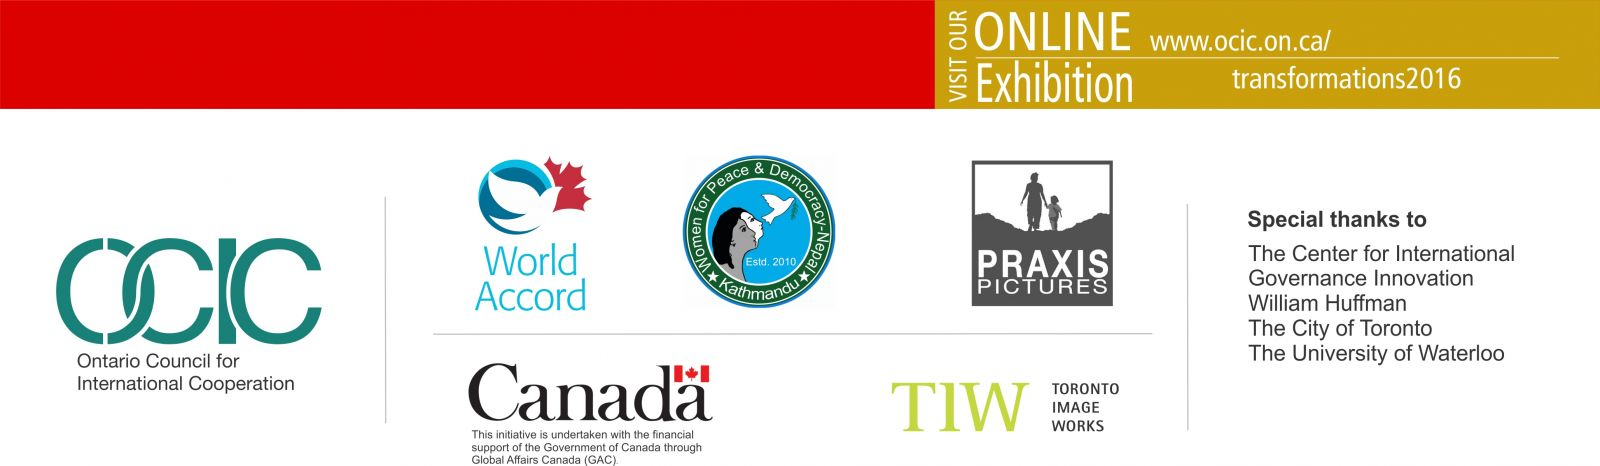 Red and gold banner at top: View our Online Exhibition www.ocic.on.ca/transformations2016. Below are partner logos: OCIC, World Accord, Women for Peace and Democracy Nepal, Praxis Pictures, Government of Canada, Toronto Image Works. Special Thanks to: The Centre for International Governance Innovation, William Huffman, The City of Toronto, The University of Waterloo.